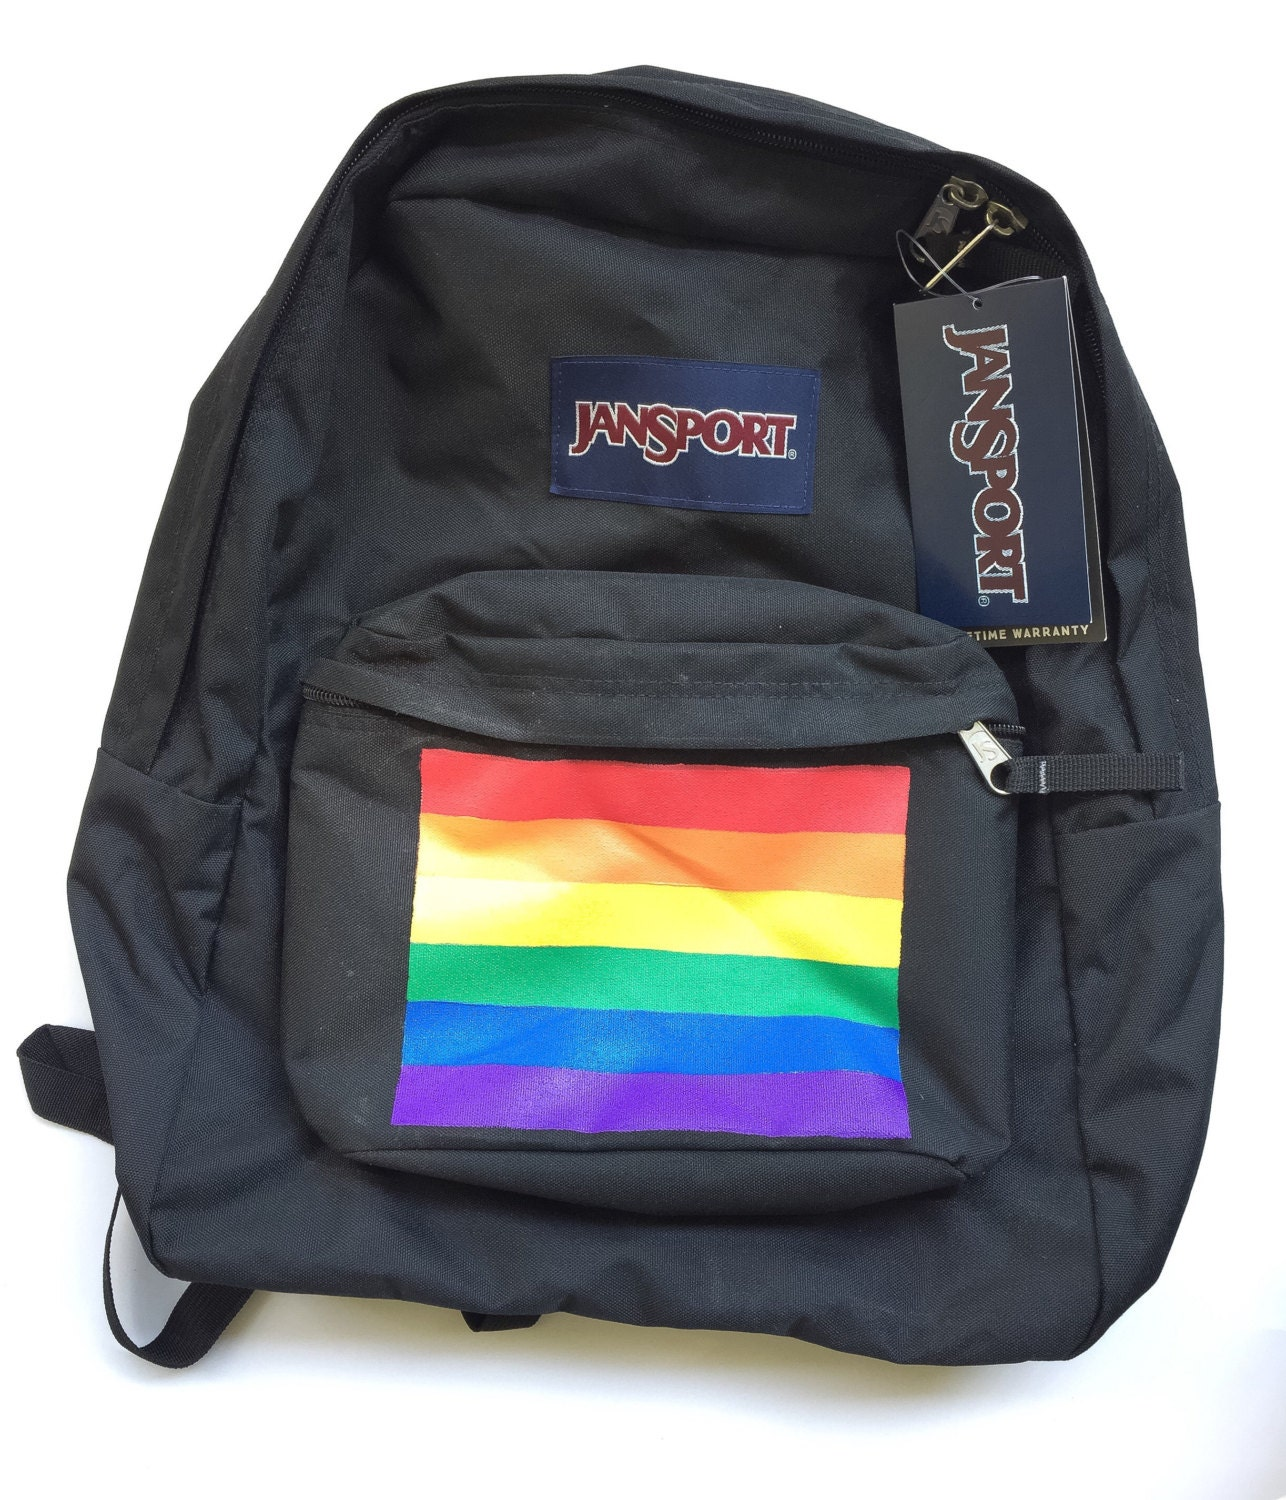 Jansport Backpack Warranty Registration